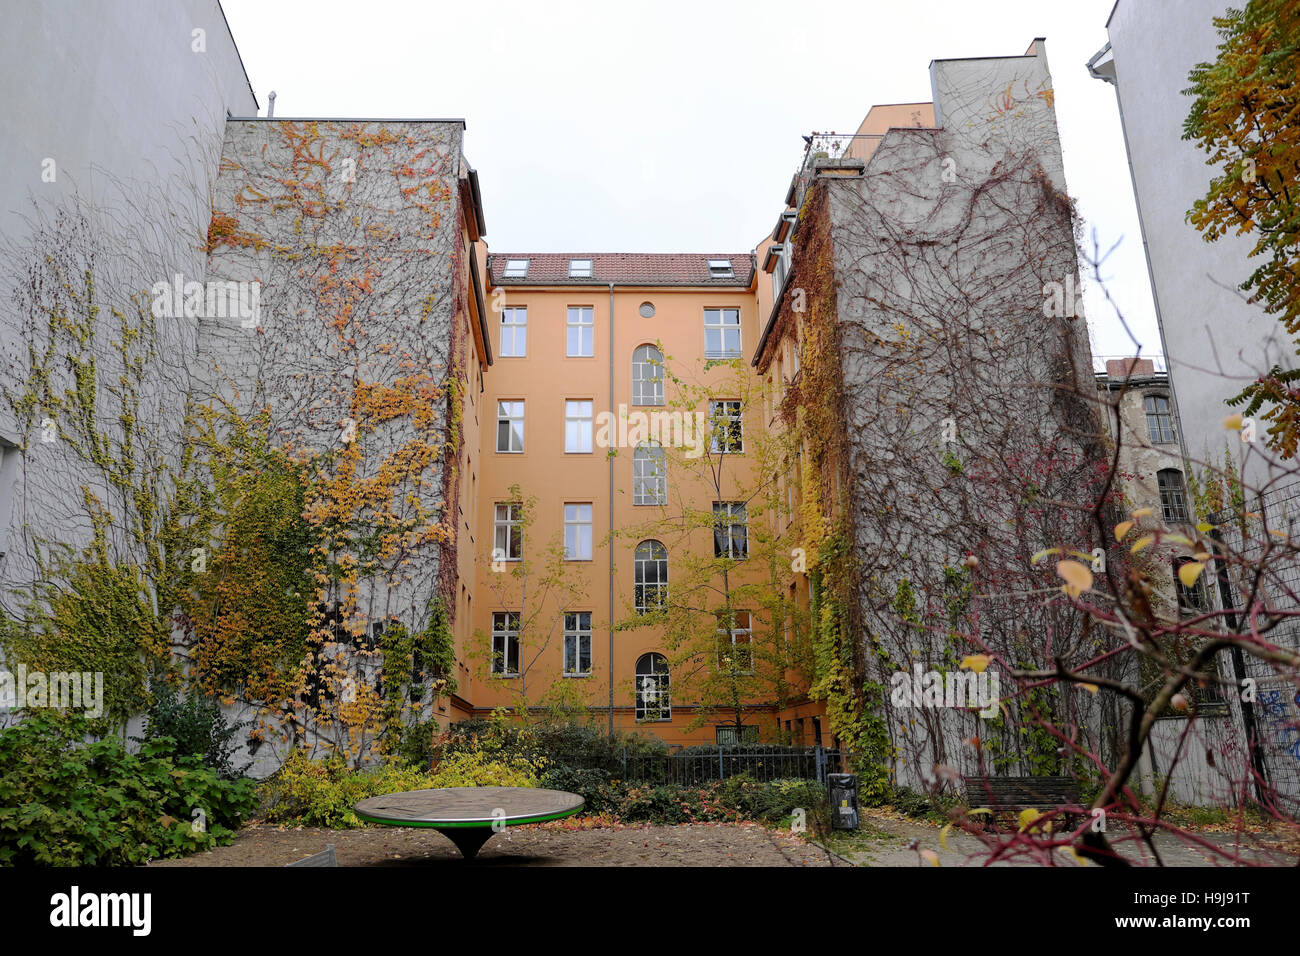 Garden Apartments Stock Photos & Garden Apartments Stock Images - Alamy